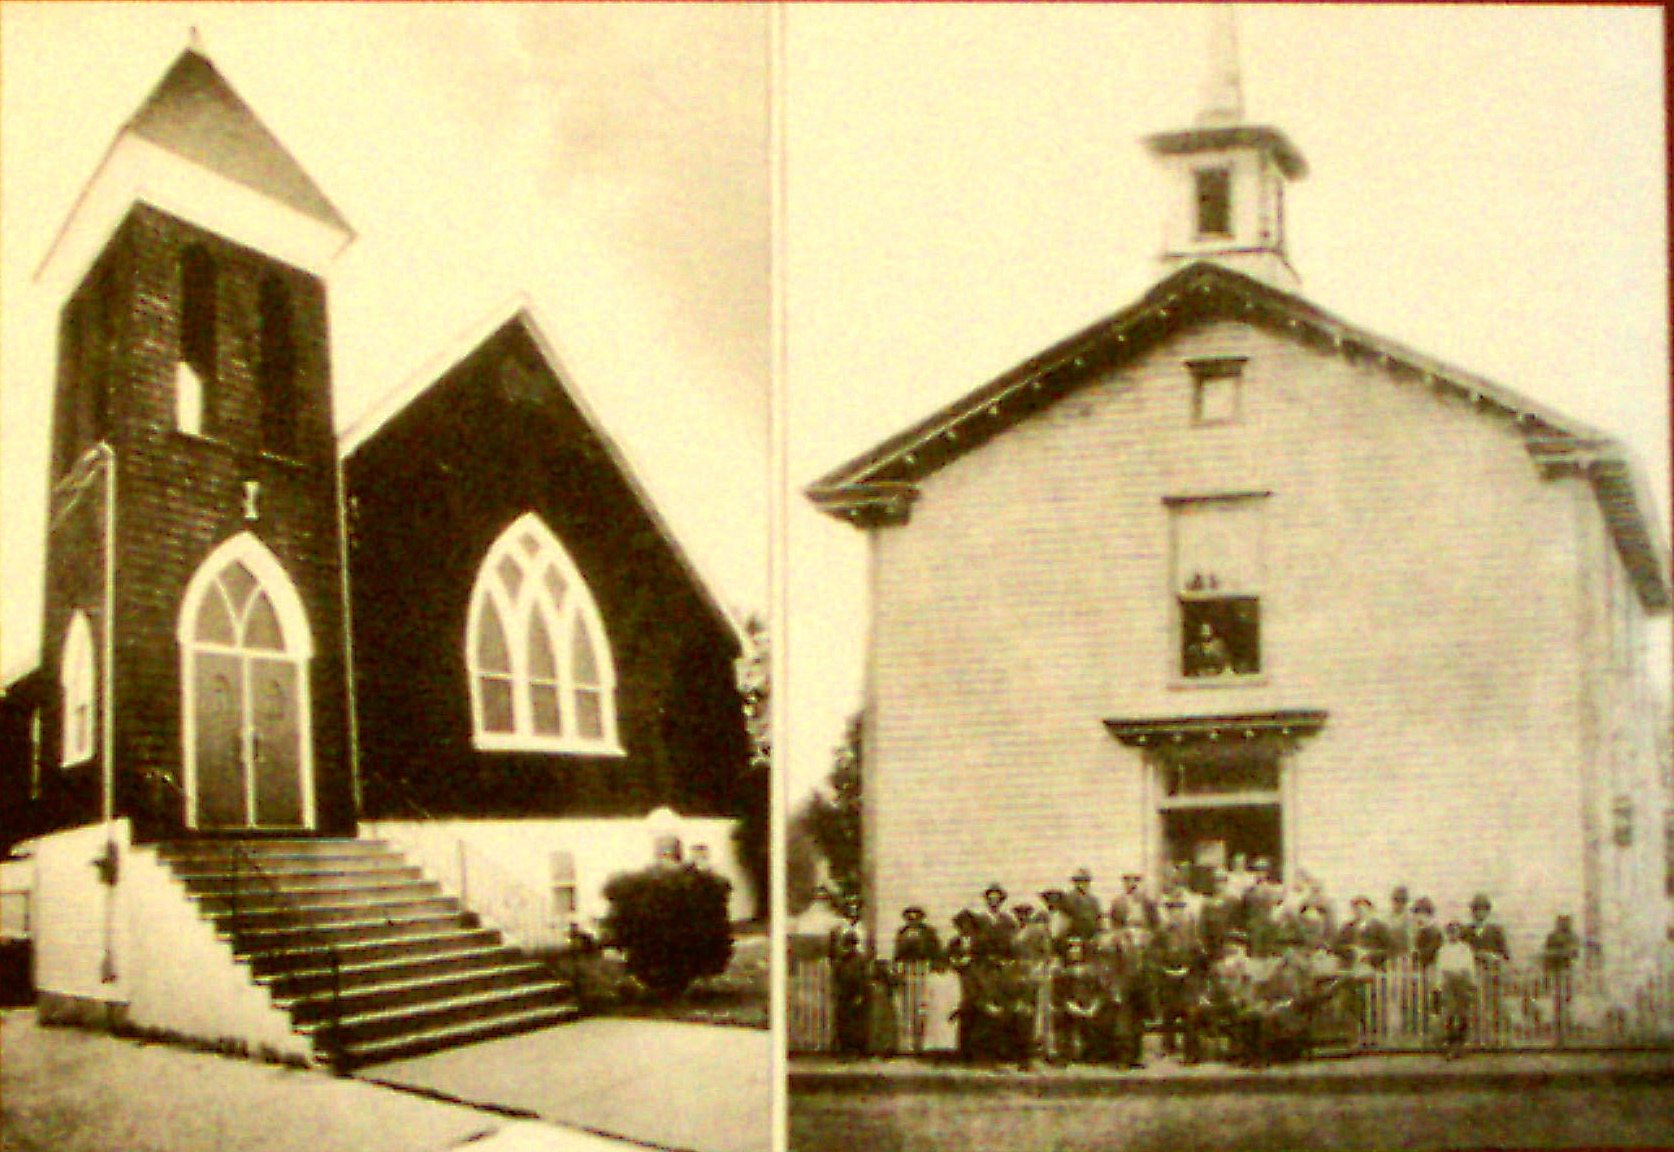 14-*MT. PISGAH A.M.E. CHURCH AND ITS CONGREGATION IN 1827-1890 AT MOULDY AND COMPANY ROADS IN LAWNSIDE, NEW JERSEY (c. LAWNSIDE HISTORICAL SOCIETY)